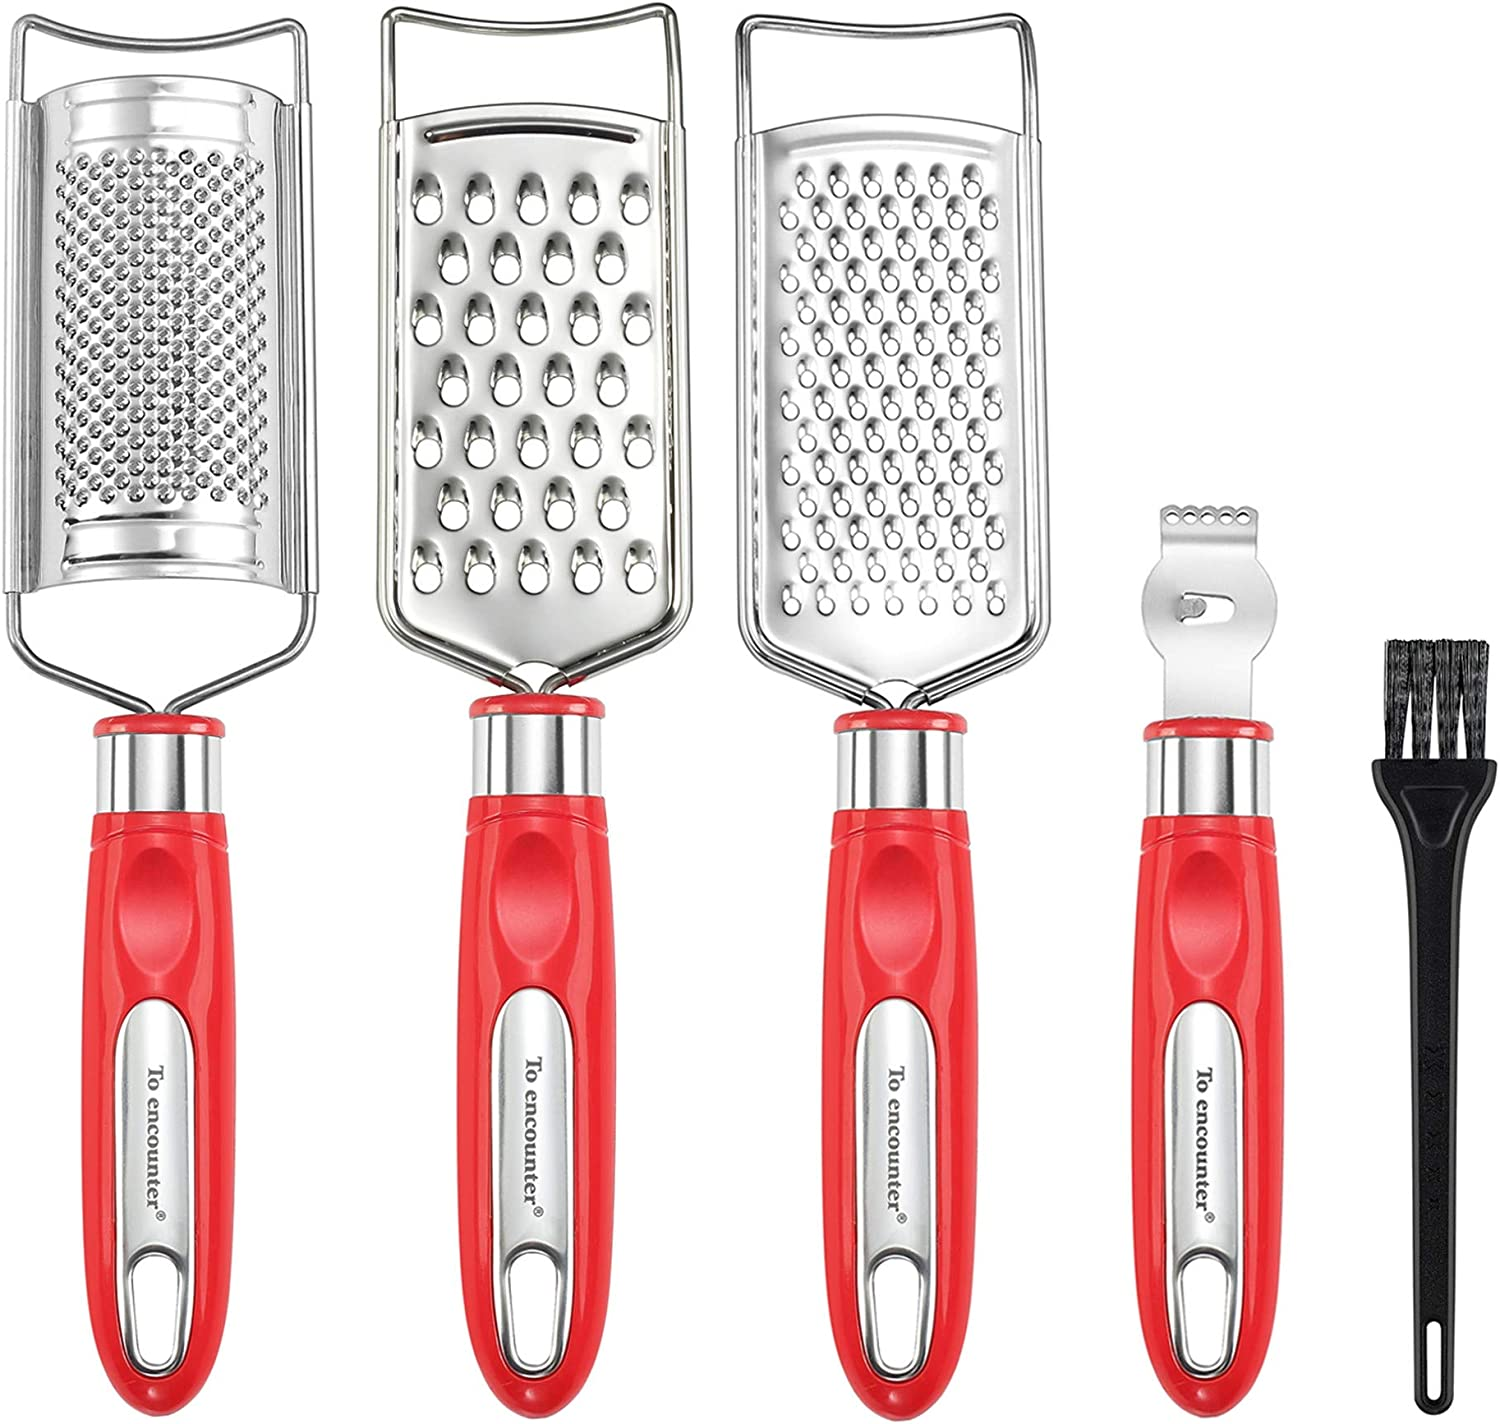 To encounter Cheese Grater Set, Set of 5 Food Grater for Vegetable, Fruit, Chocolate Stainless Steel Multi-purpose Kitchen Grater & Peeler & Slicer, Lemon Zester with Cleaning Brush (Red)